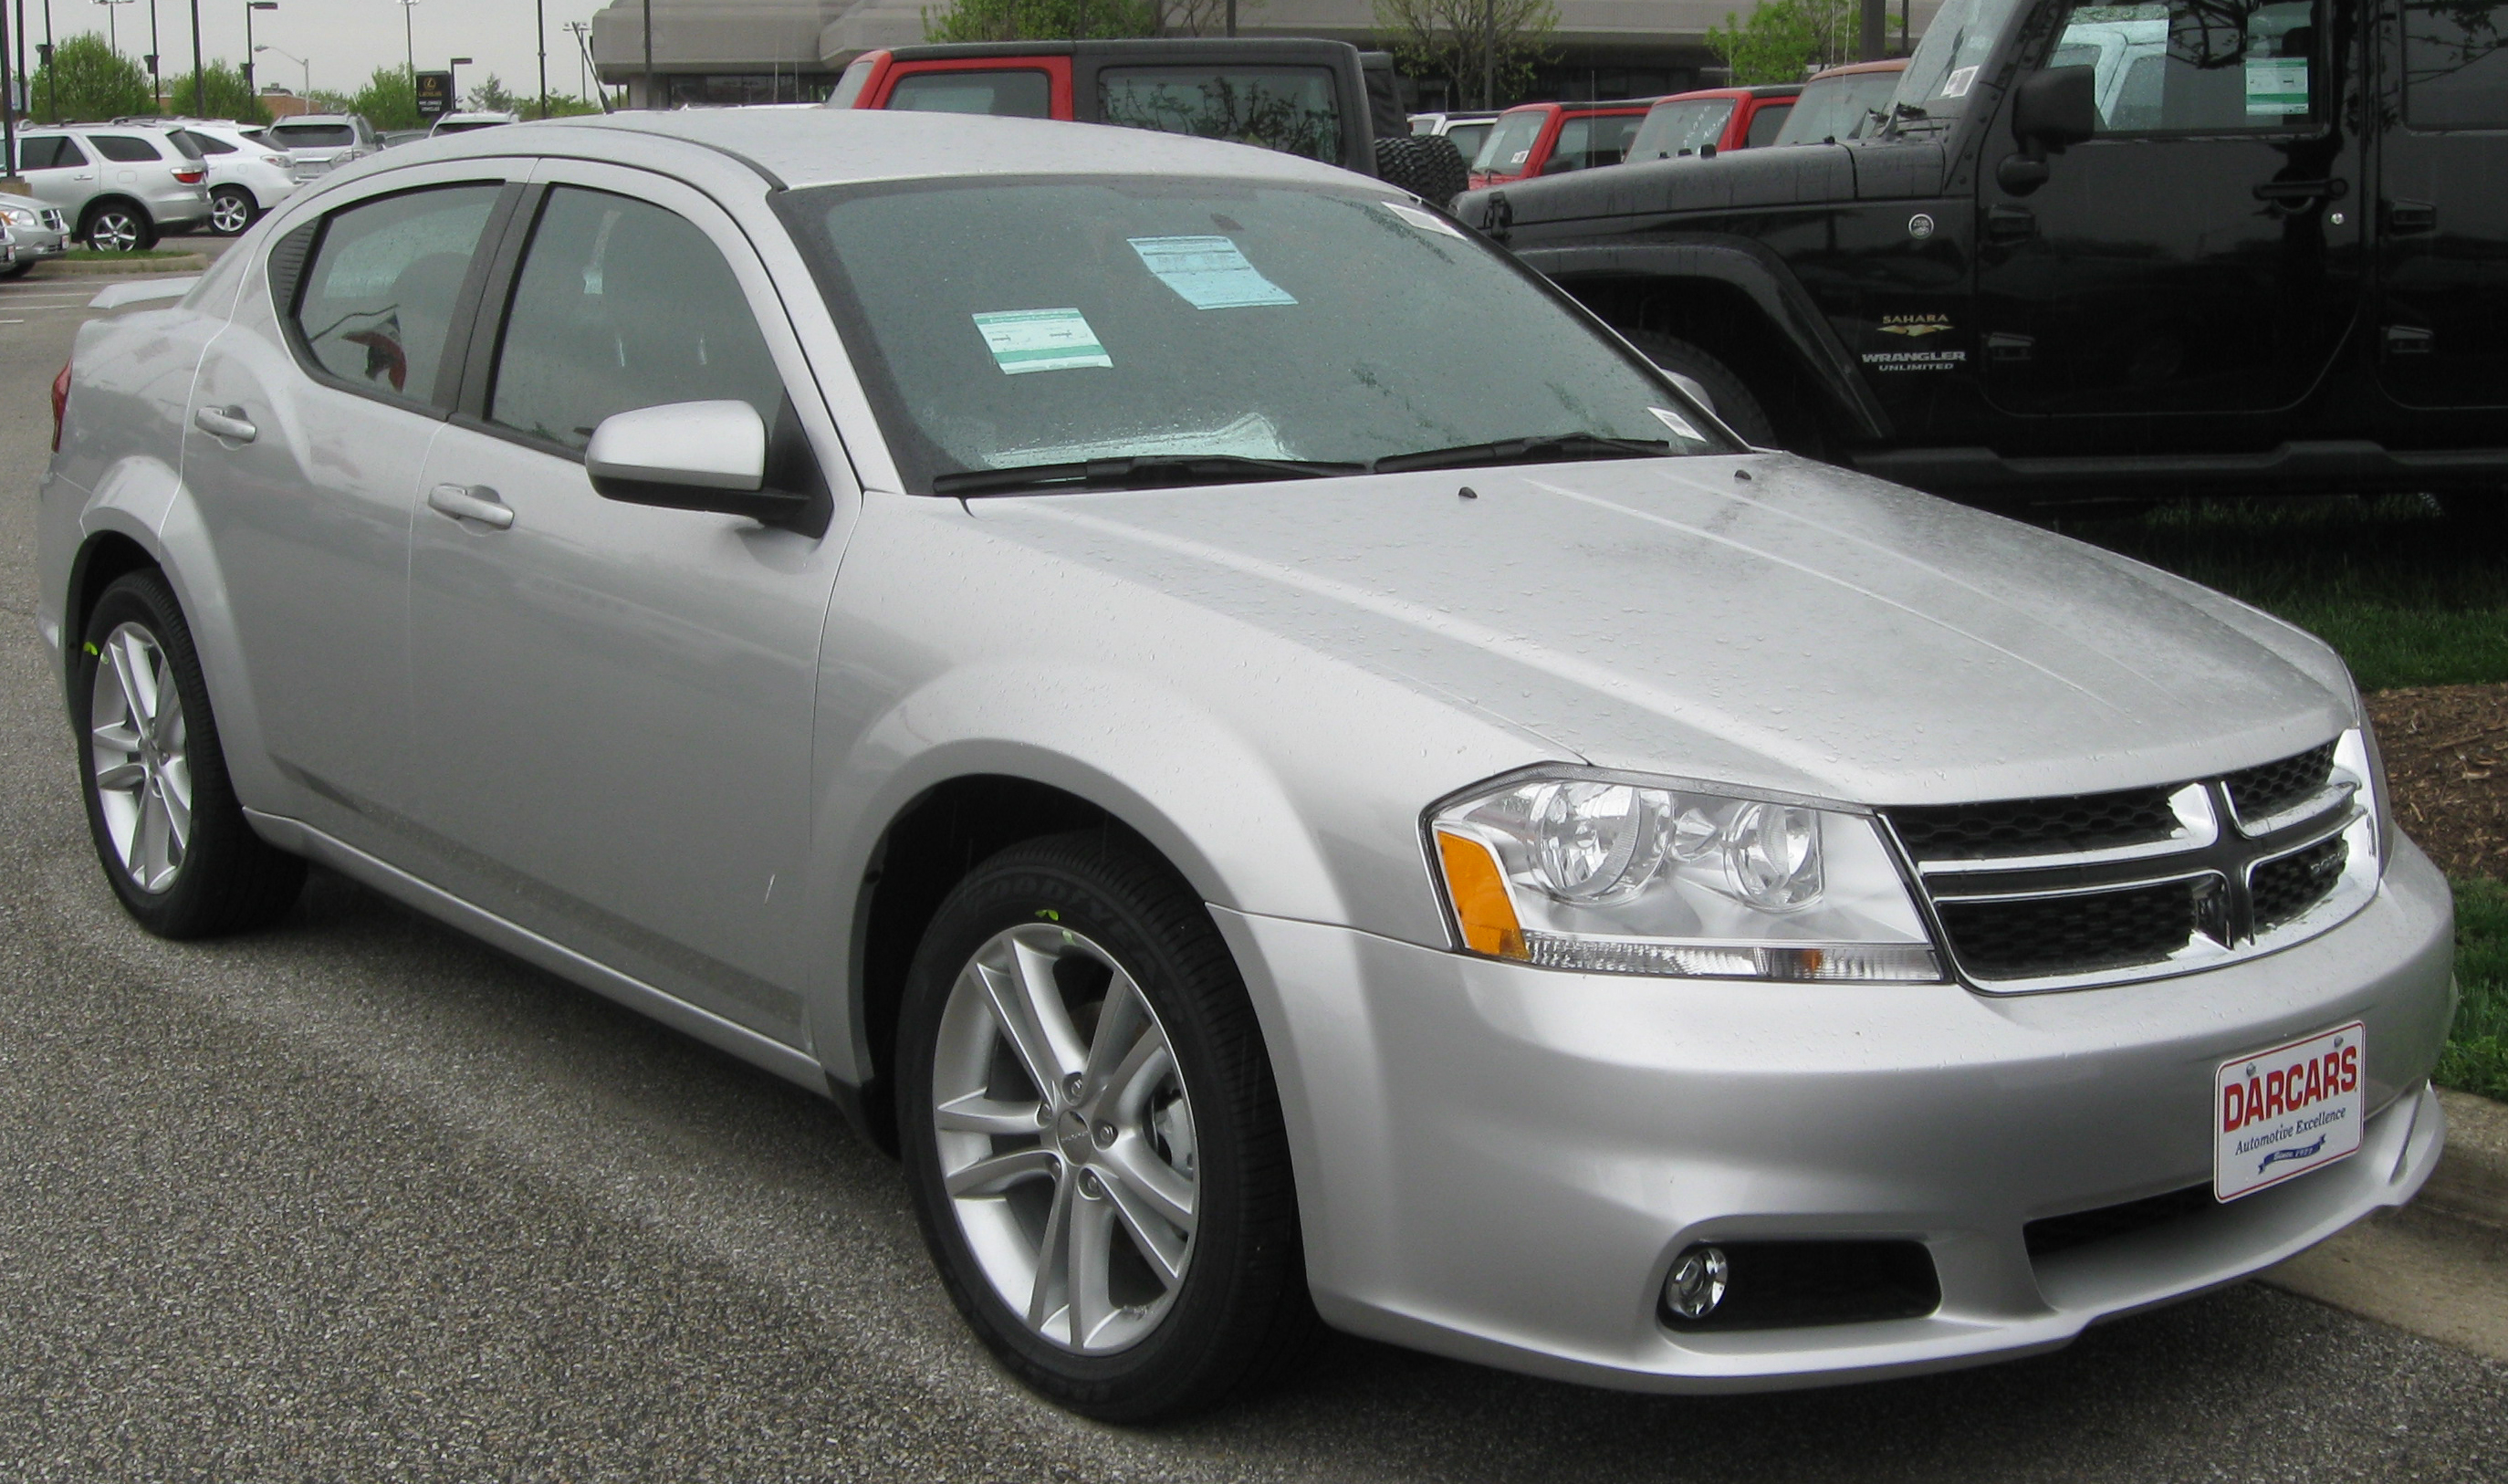 file:2011 dodge avenger heat -- 04-22-2011 - wikimedia commons